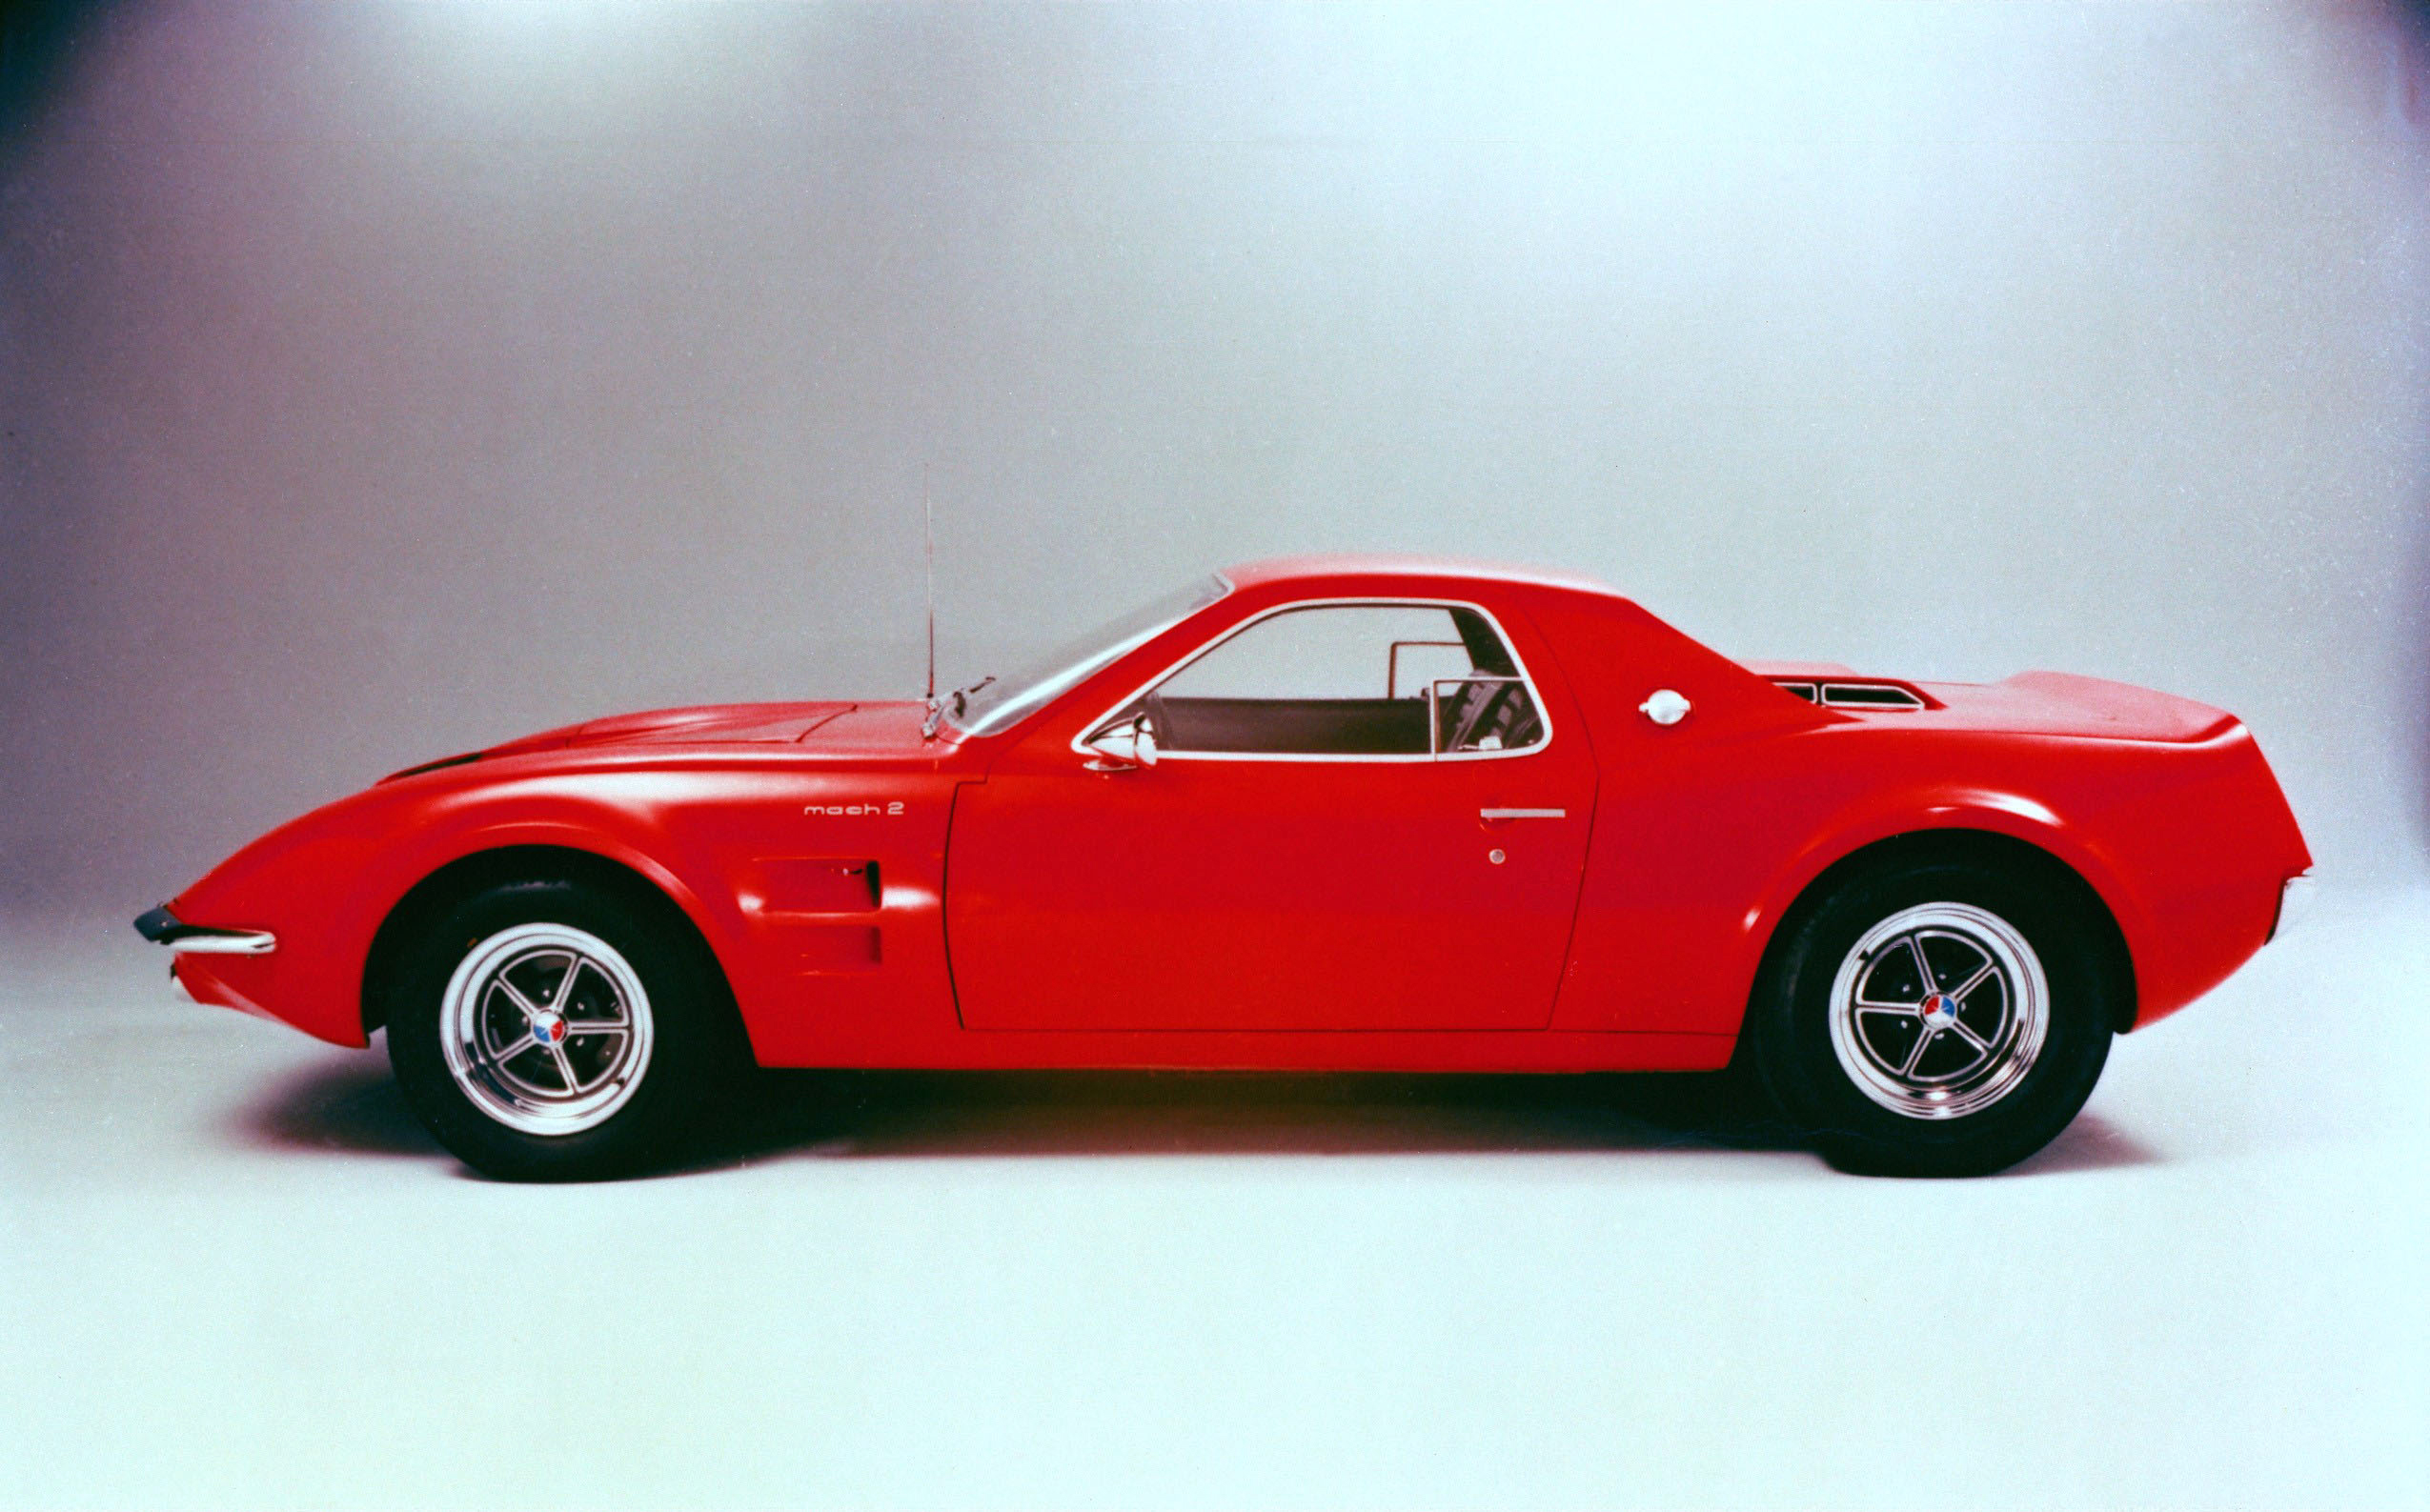 1967р. Mach 2 Concept, фото Ford Mustang